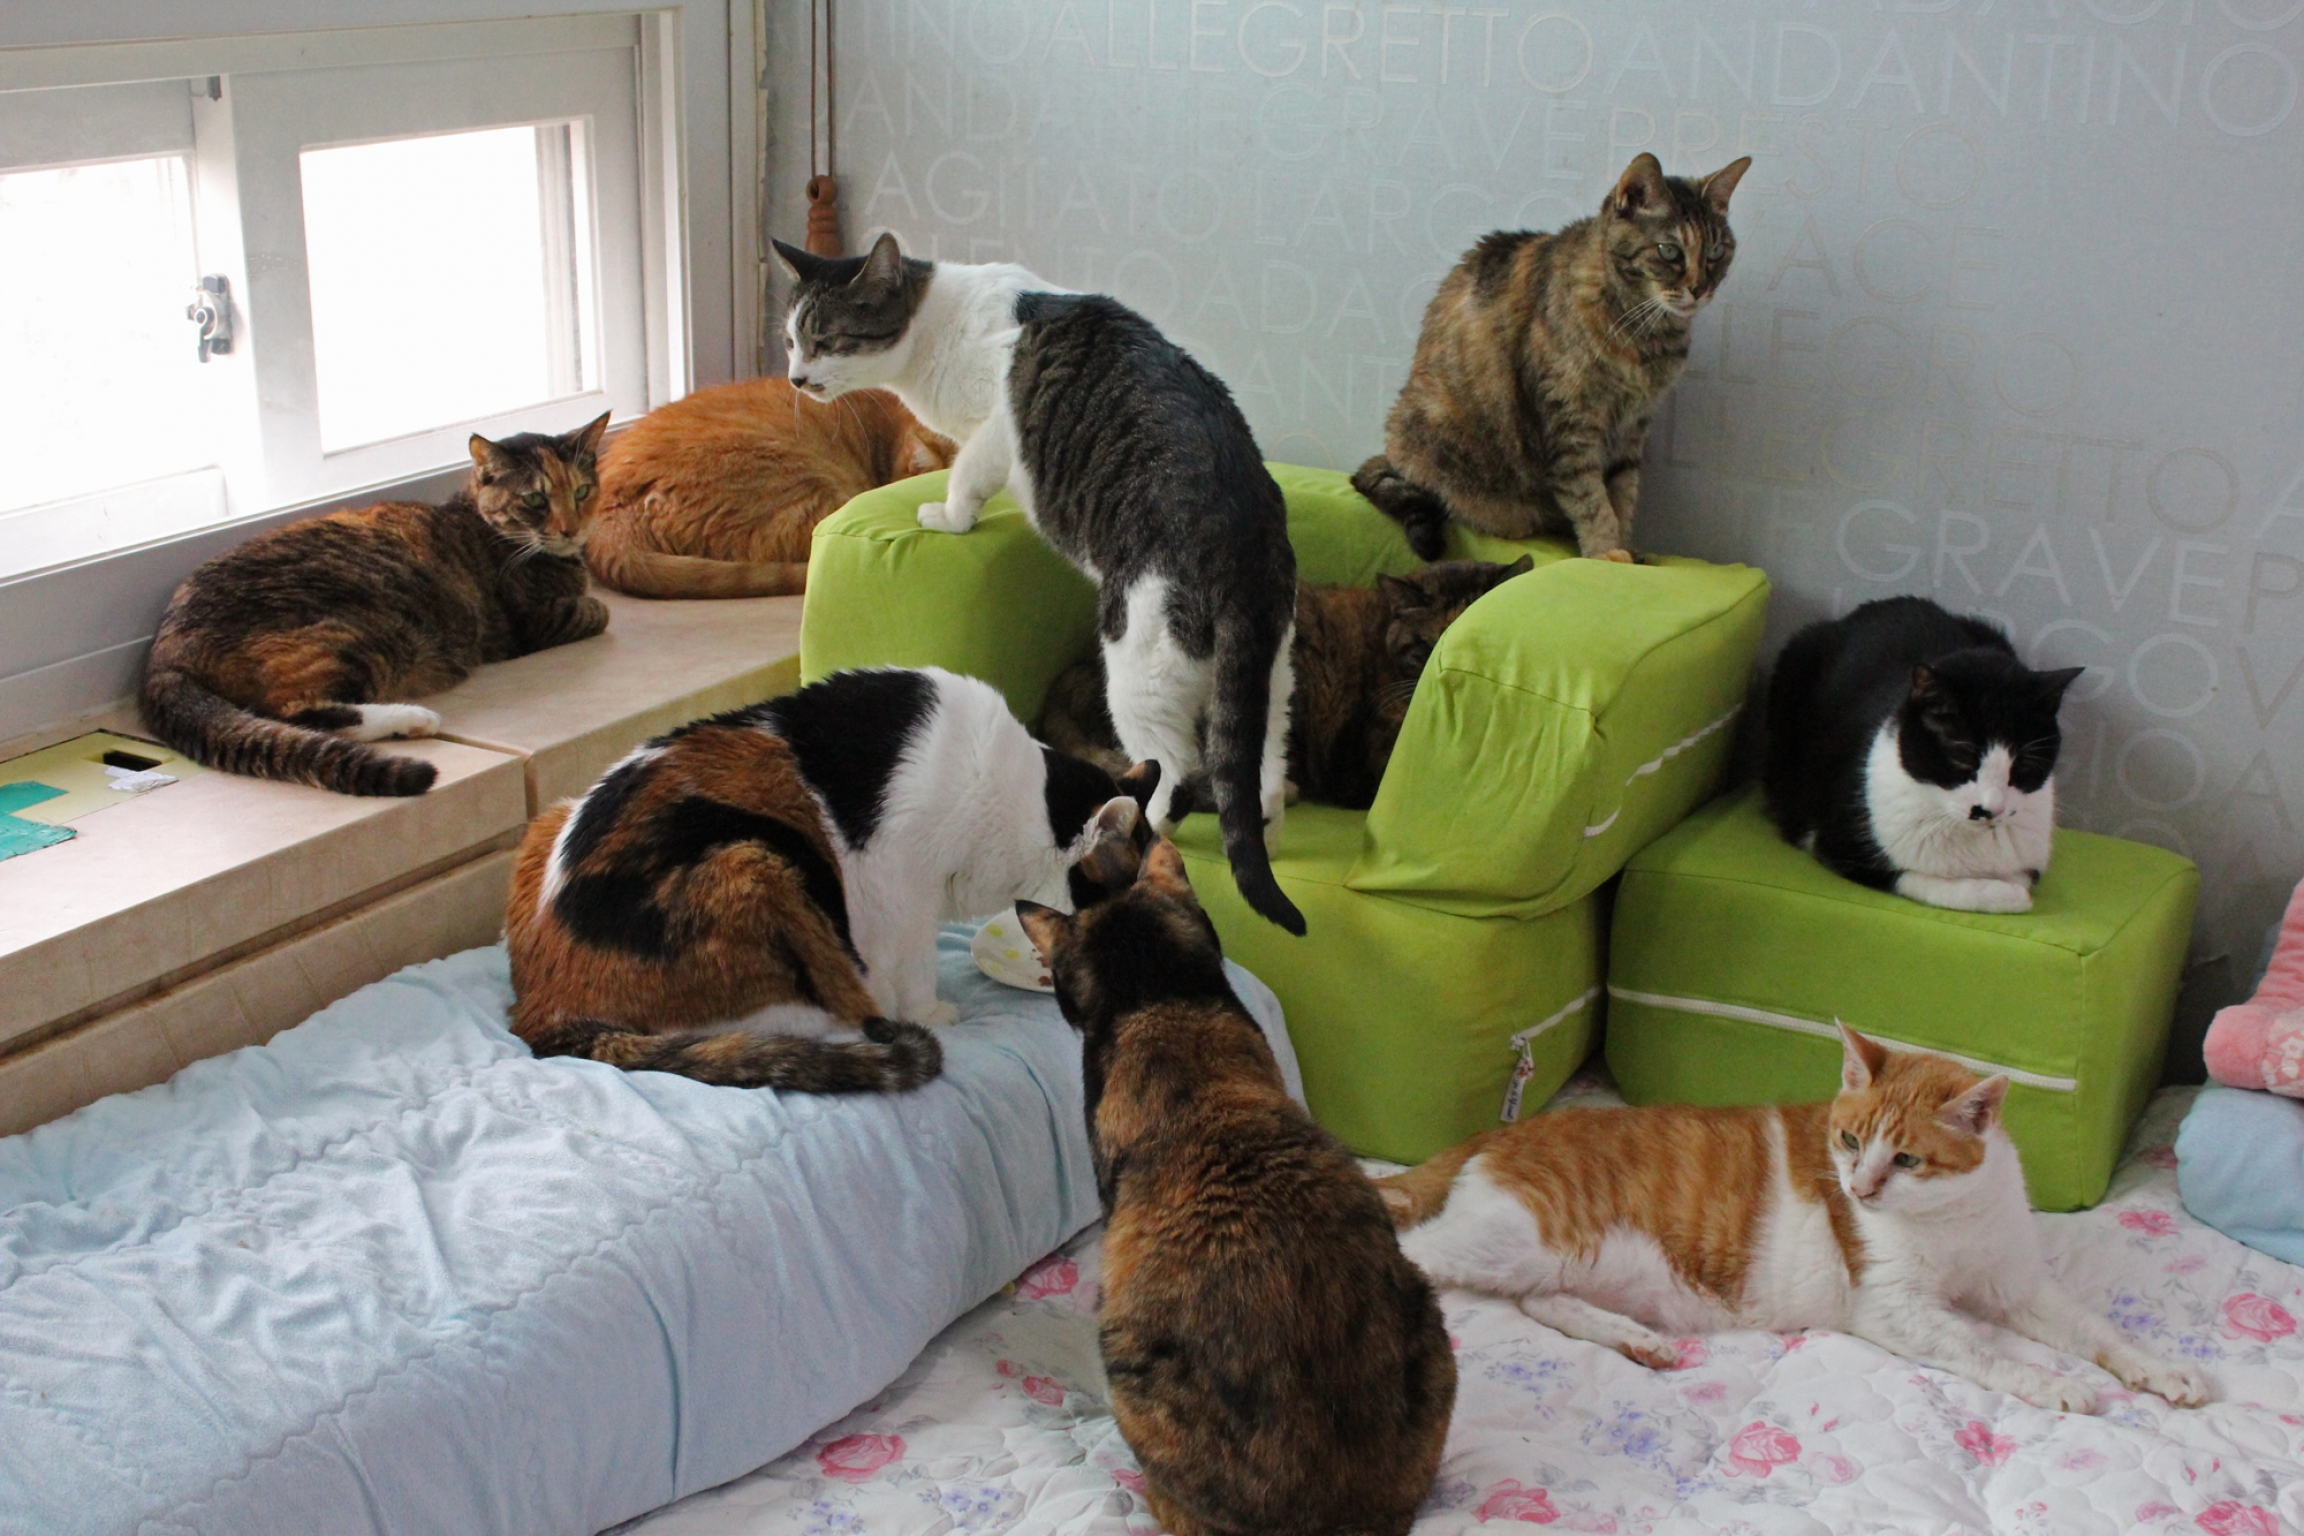 several cats lounge on green chairs in an apartment